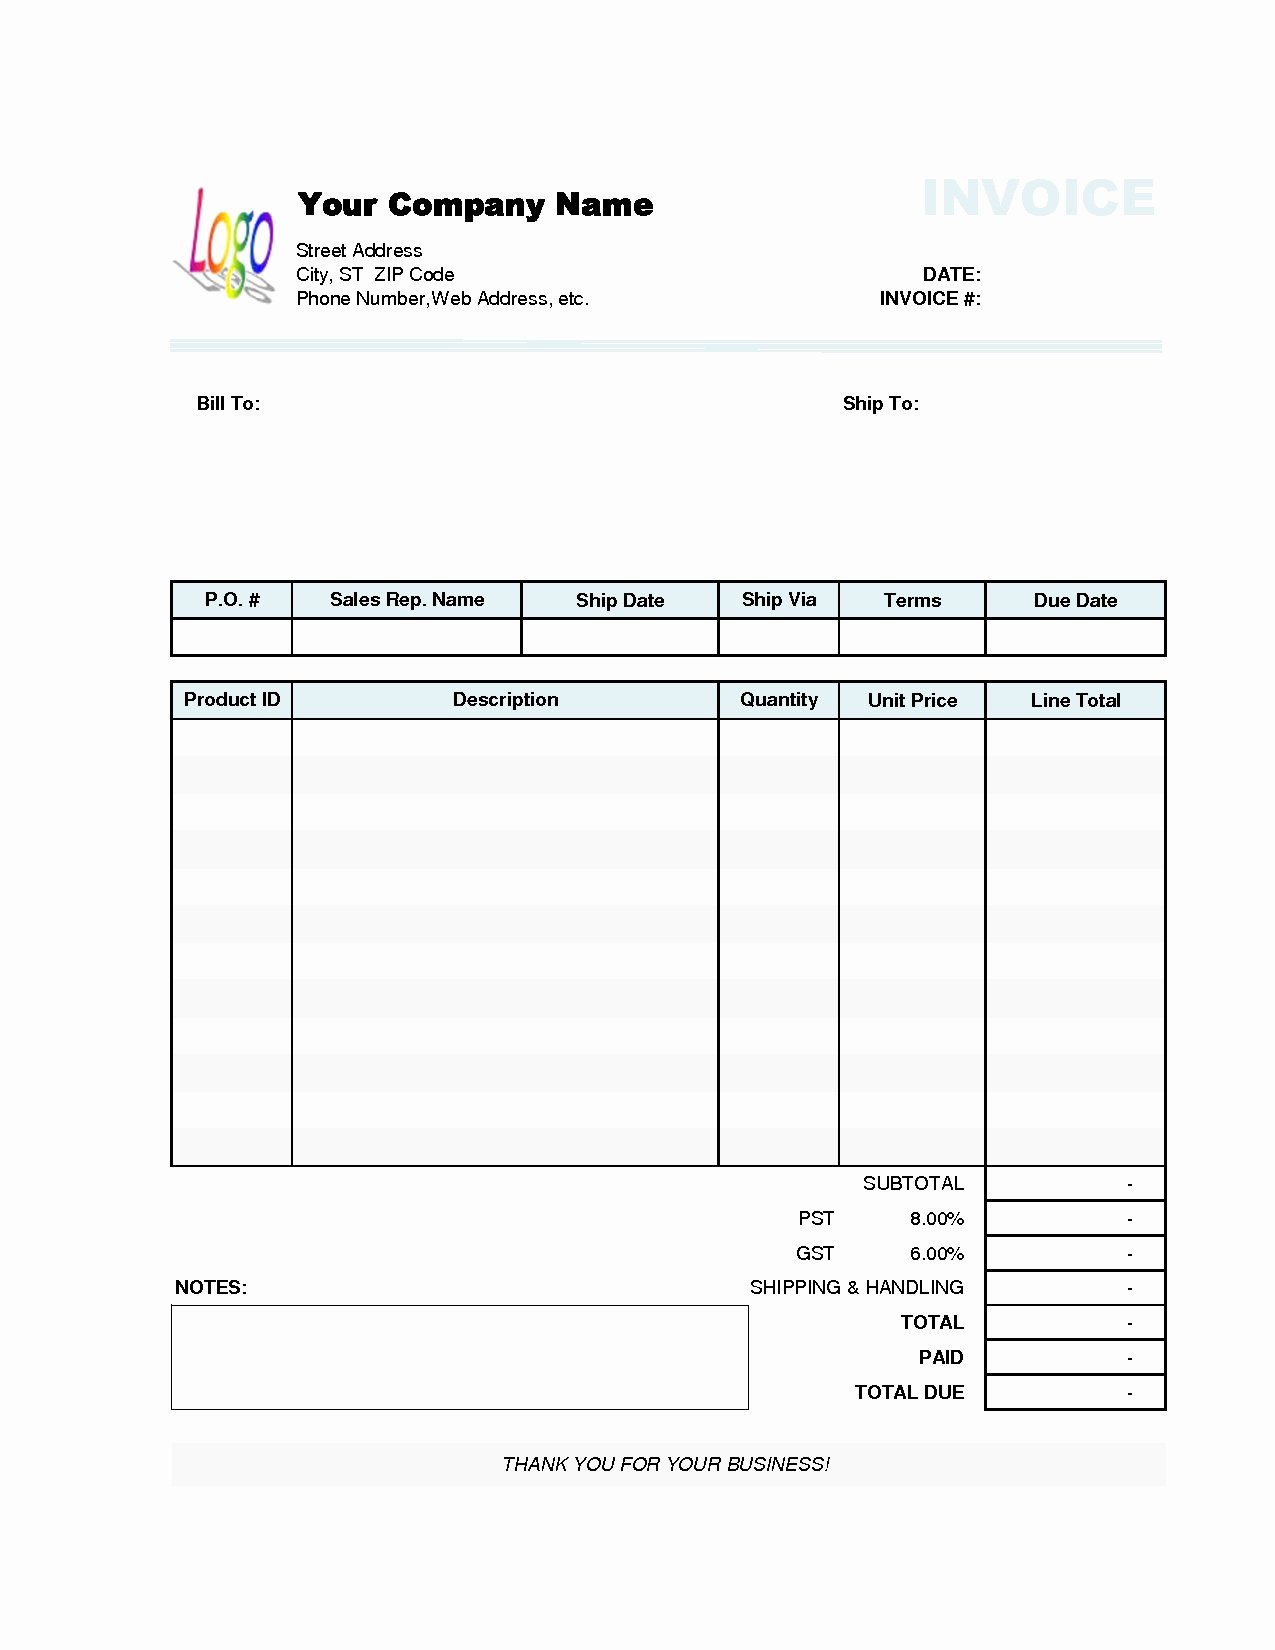 Invoice Template Word 2010 Best Of Invoice Template Word 2010 13 Reliable sources to Learn